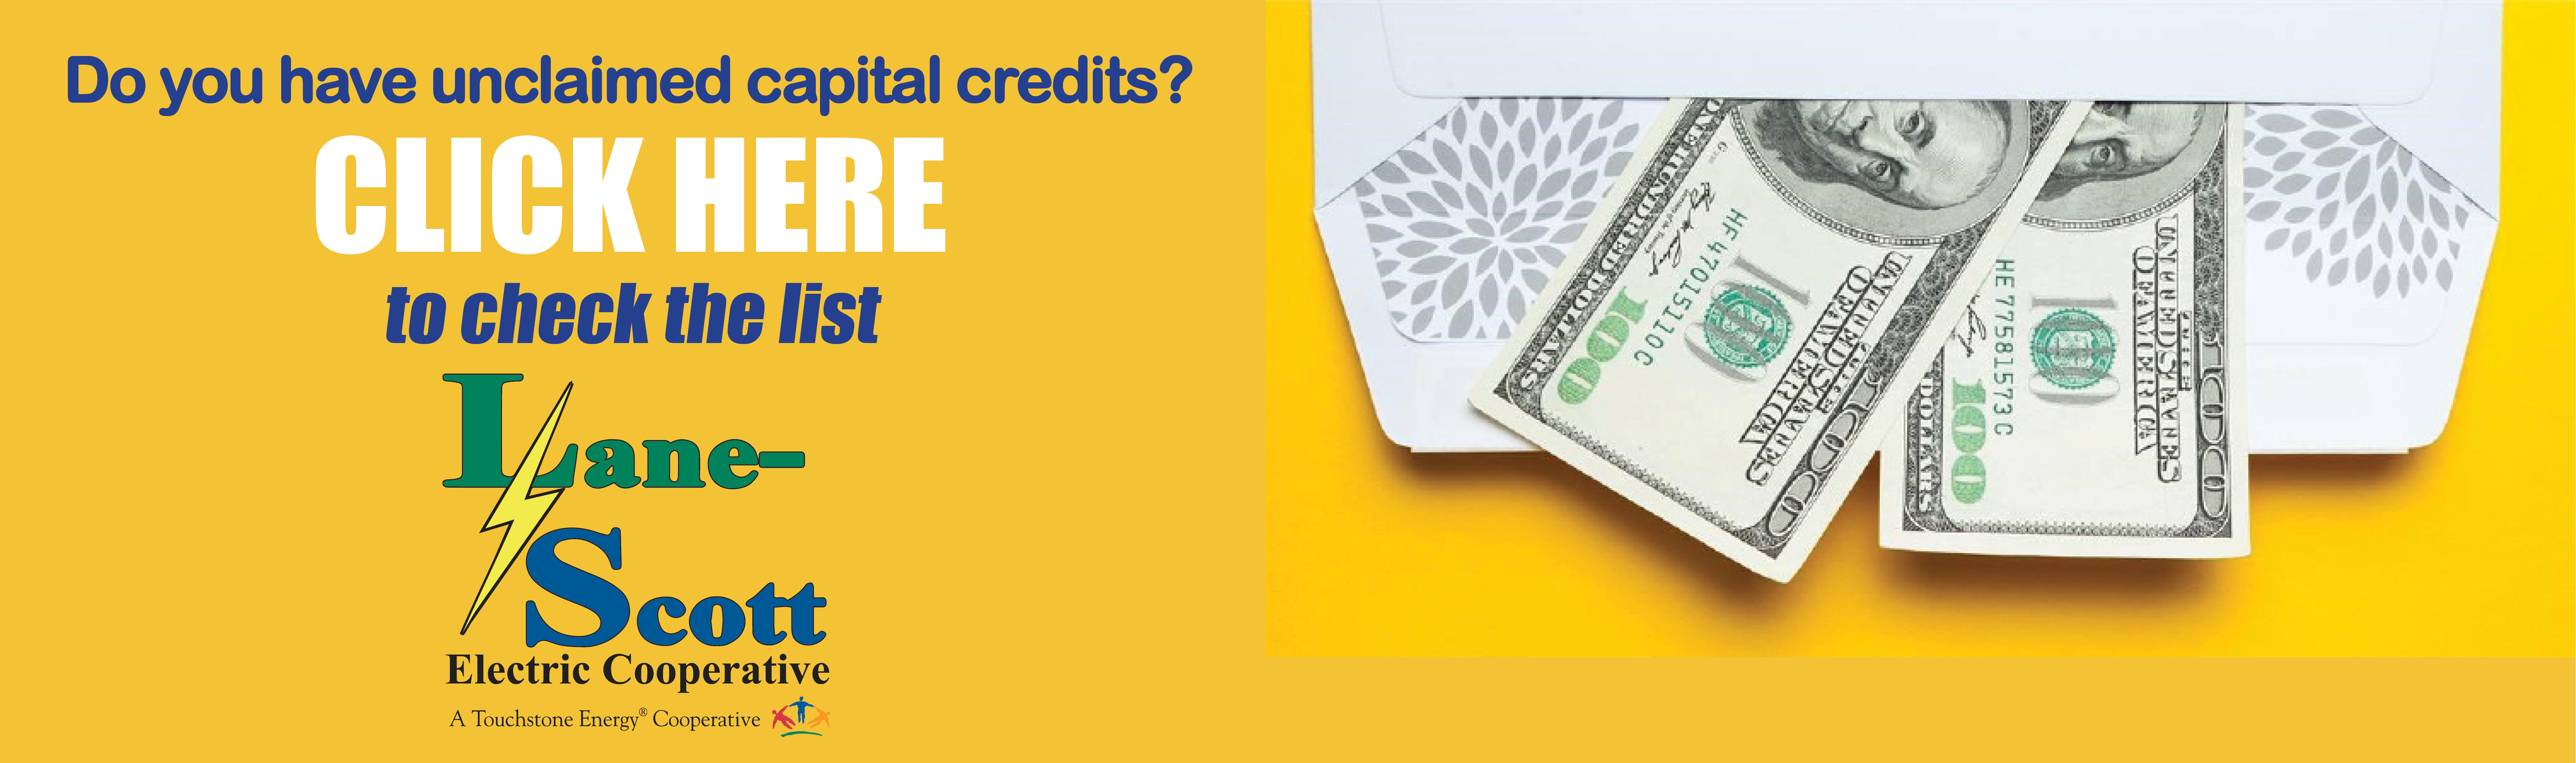 Unclaimed Capital Credits